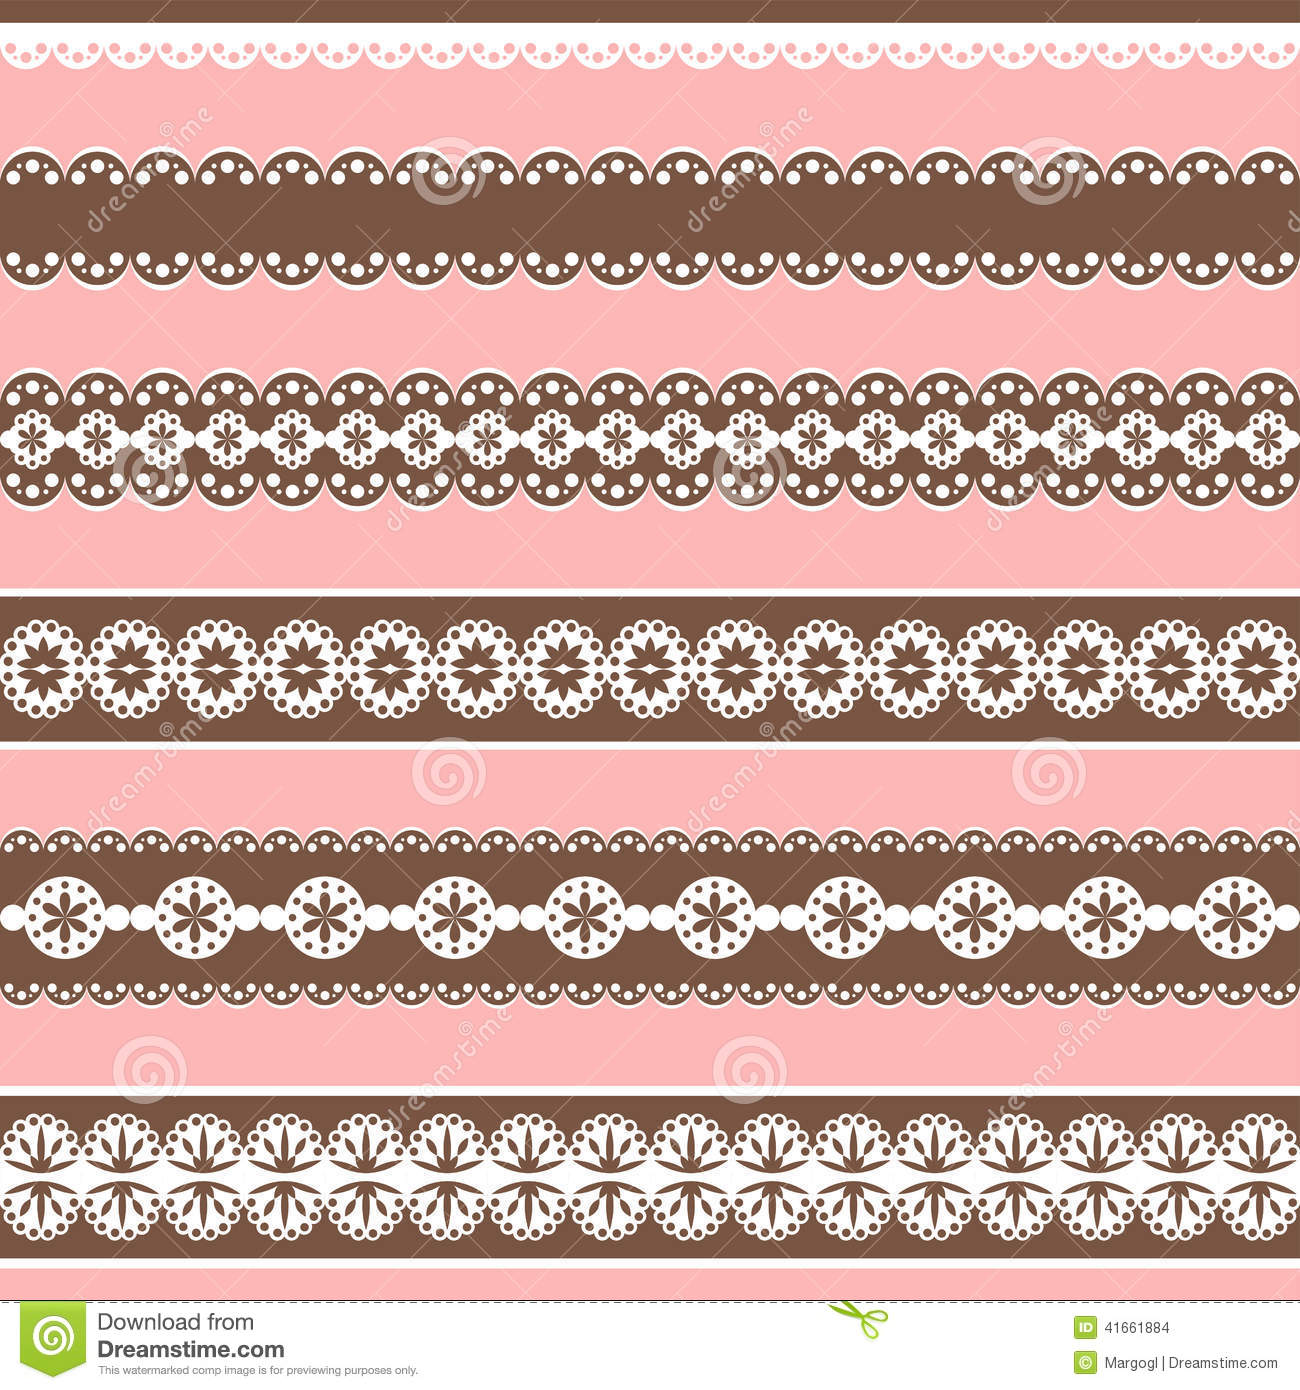 Borders Collection Design Elements For Scrapbook Stock Vector